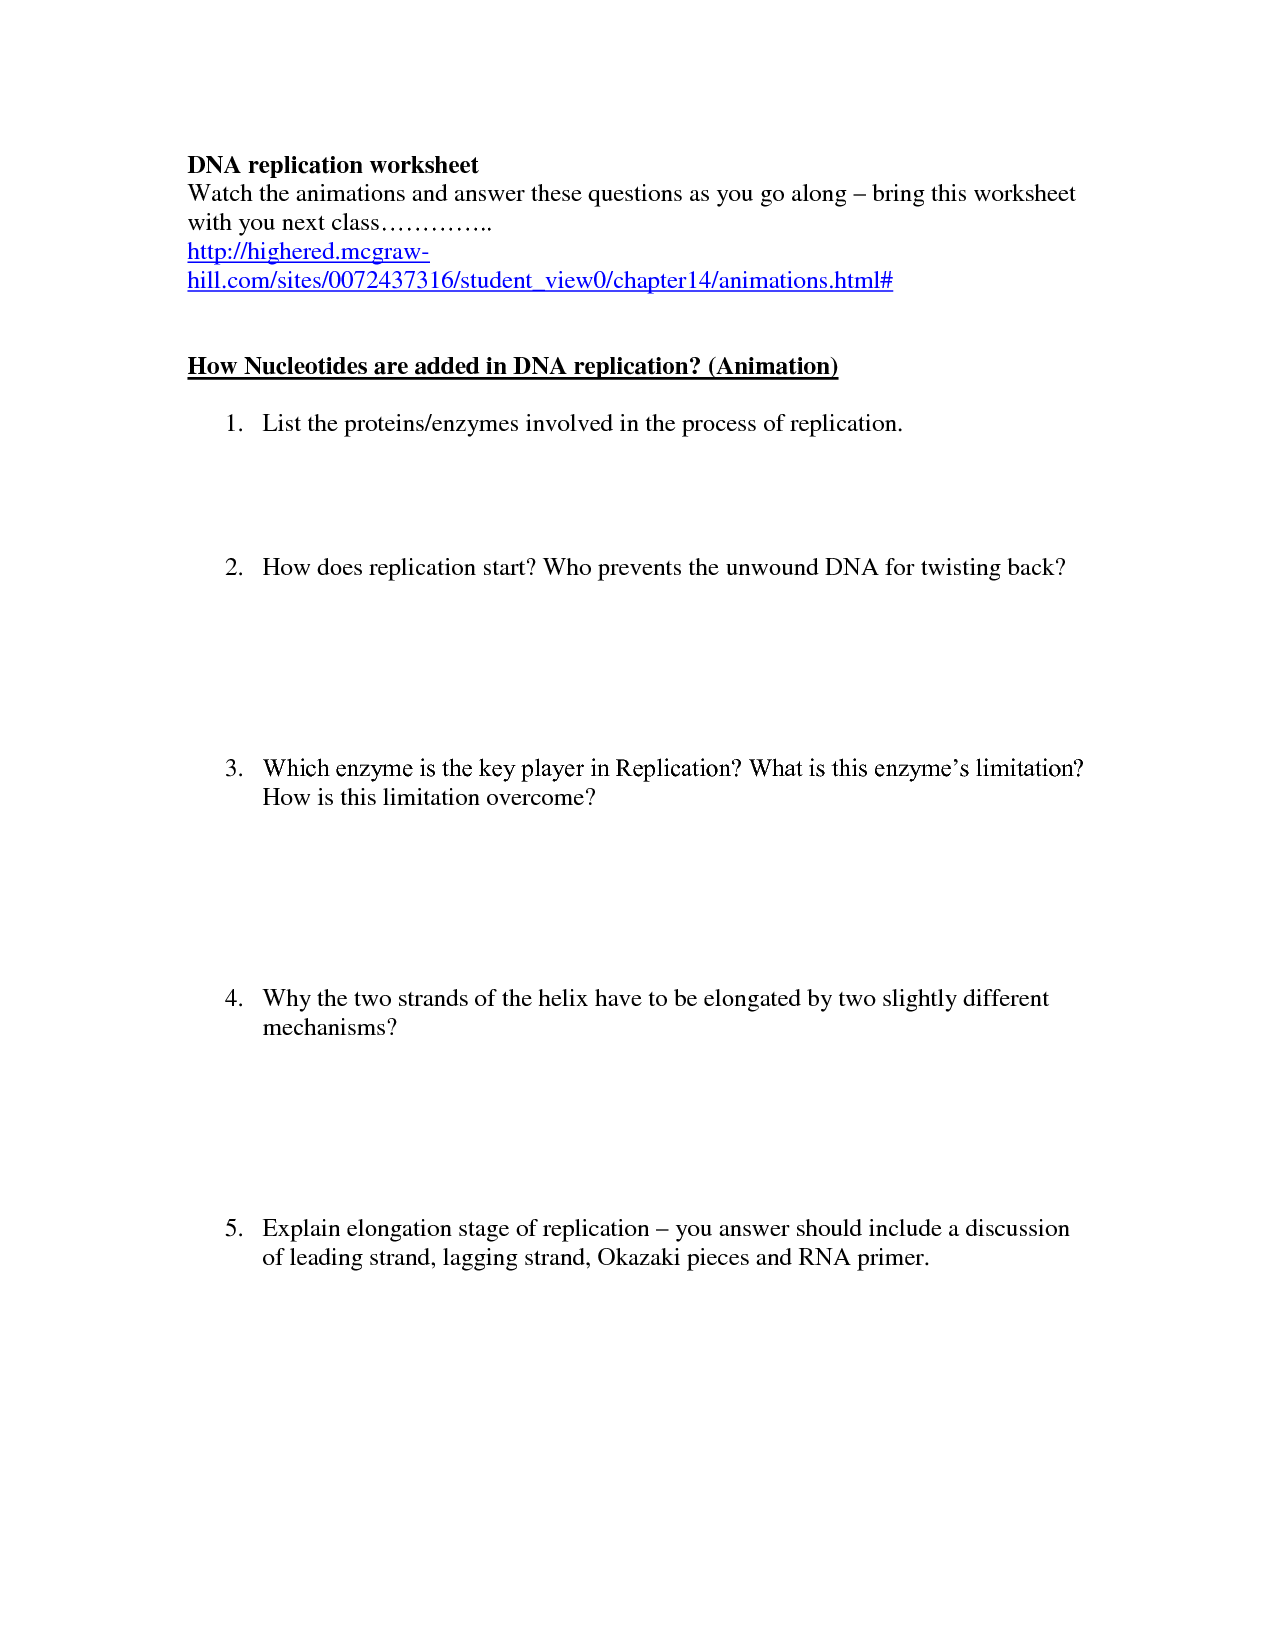 DNA Replication Worksheet Answers | Dna replication, Dna ...